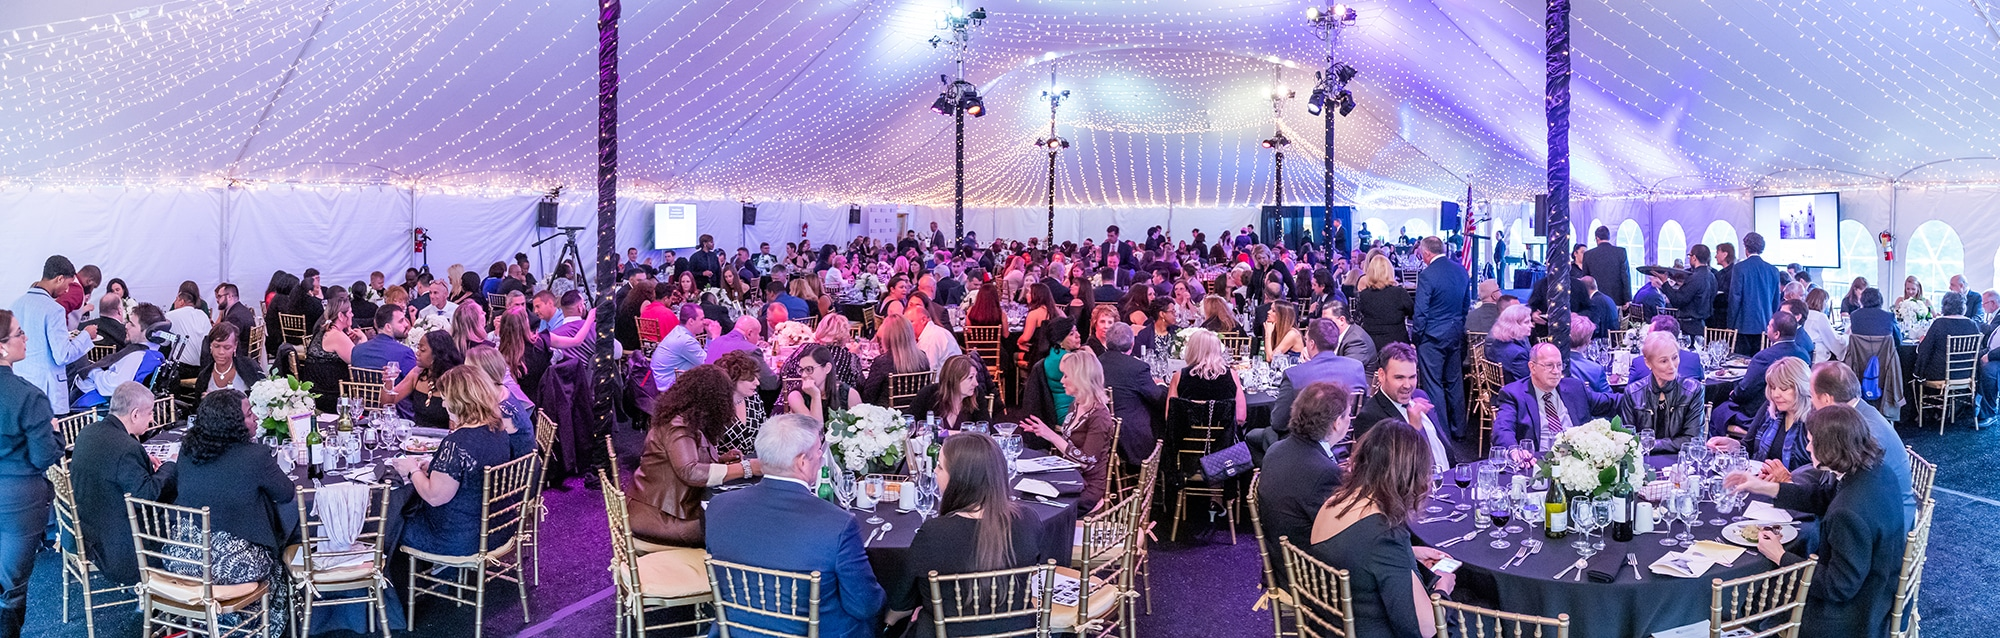 On May 9, 2019, Community Options celebrated its 30th anniversary from 5:30 PM until 10:00 PM on the campus of Princeton University at the McCarter Theatre Center Gala Tent.